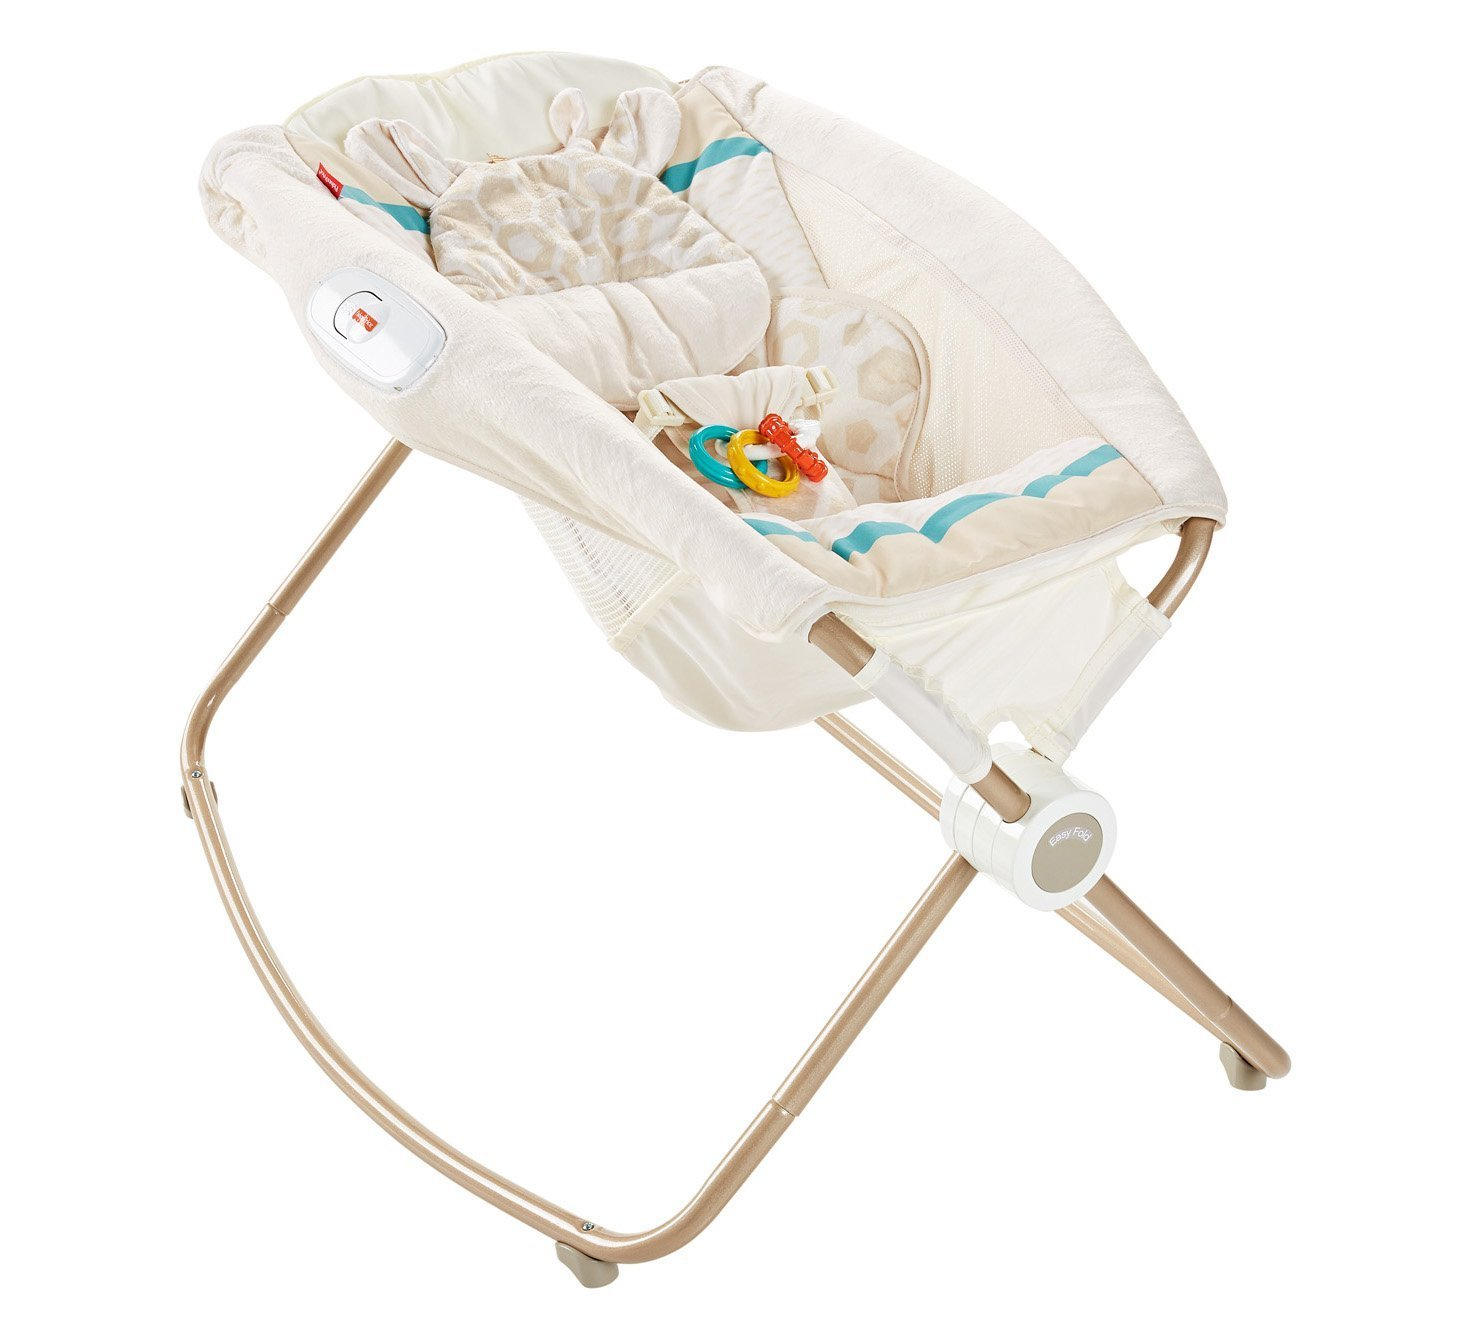 Fisher-Price Deluxe Rock 'n Play Sleeper, Soothing Savanna